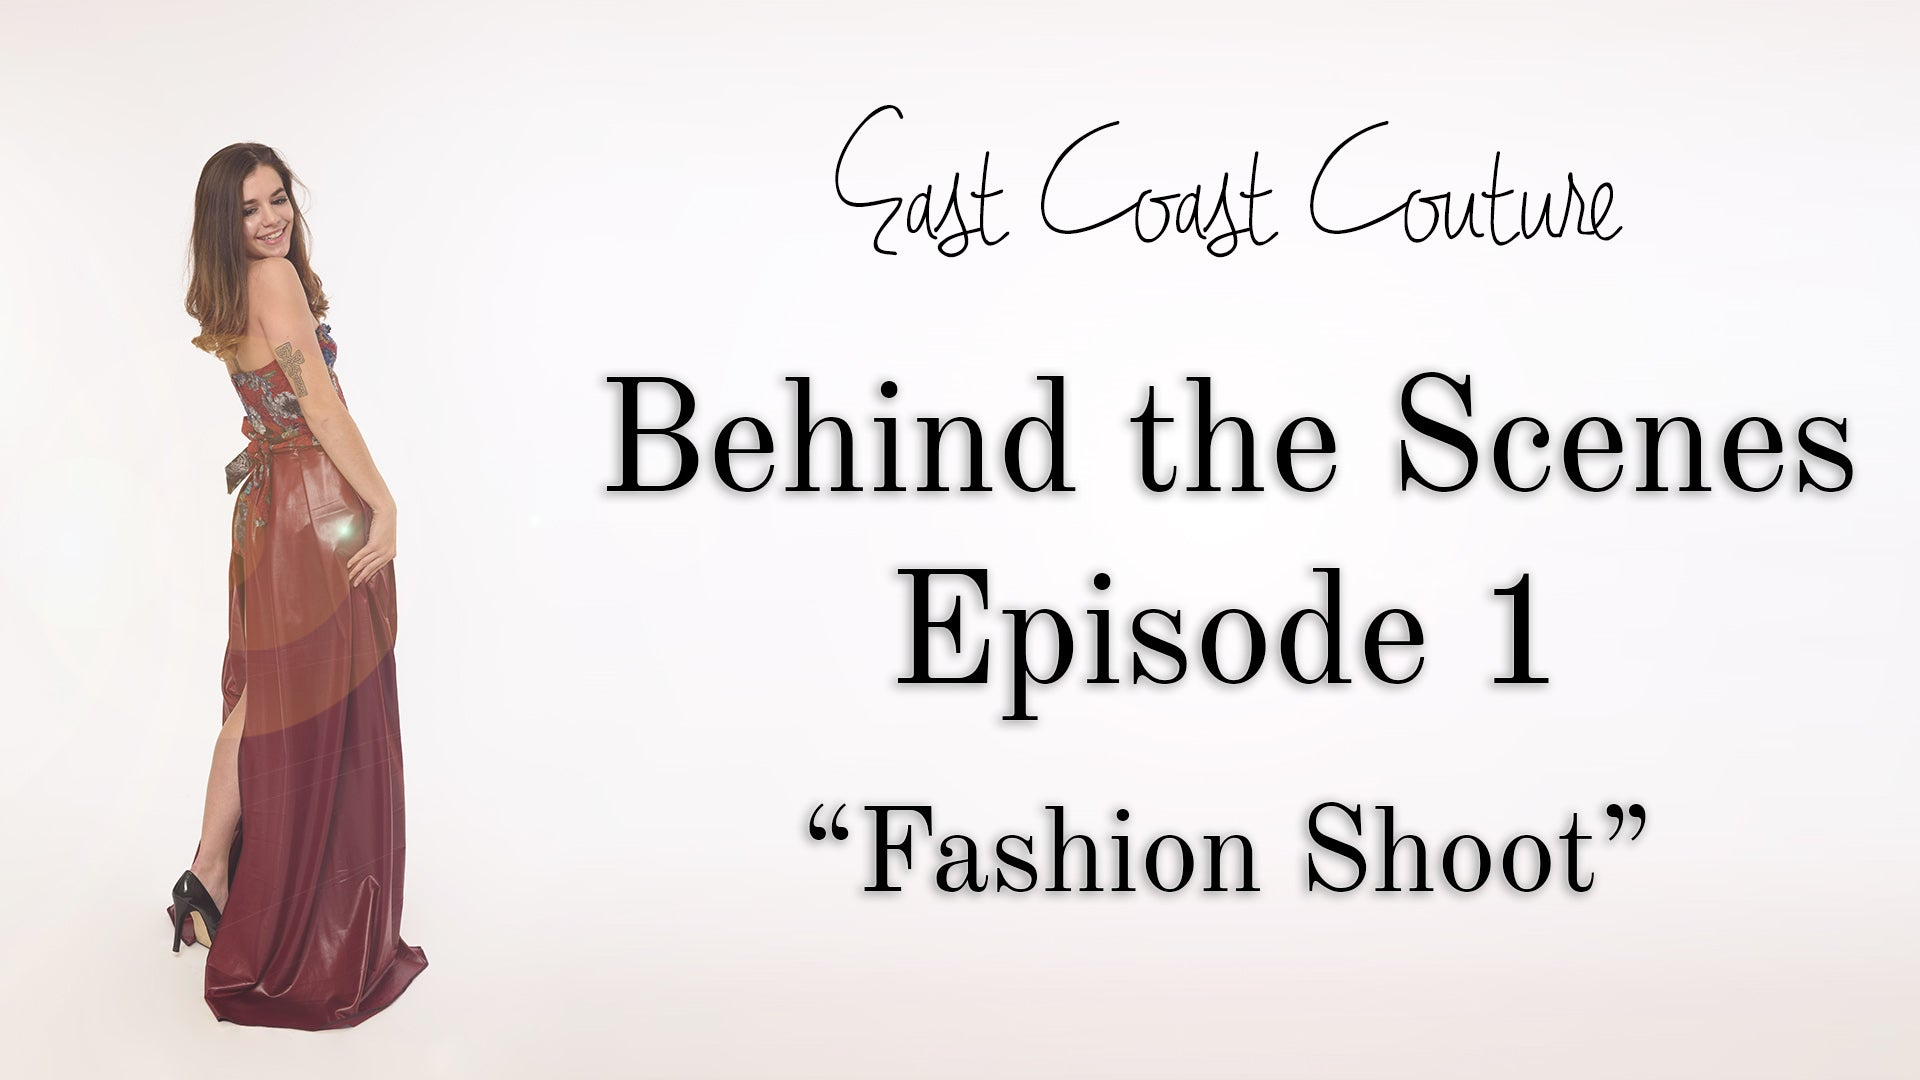 Behind the Scenes Episode 1 - Fashion Shoot